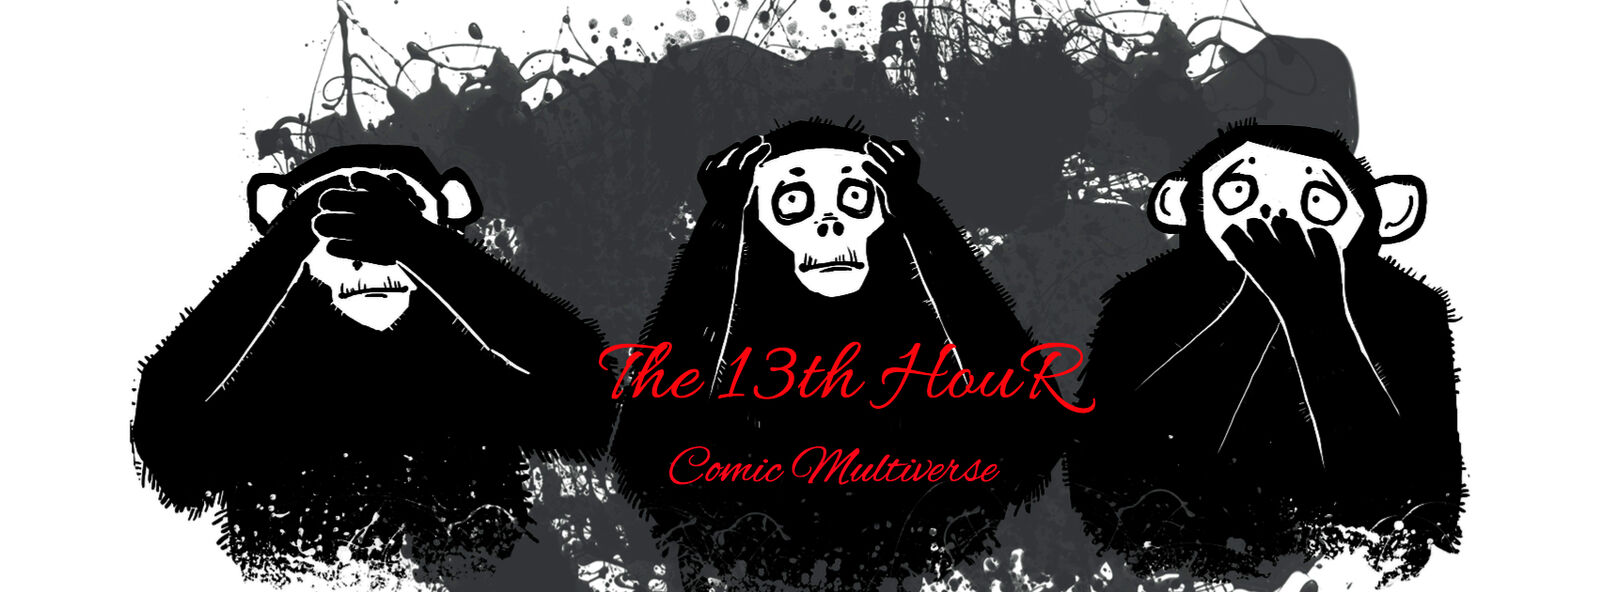 The 13th Hour Comic Multiverse